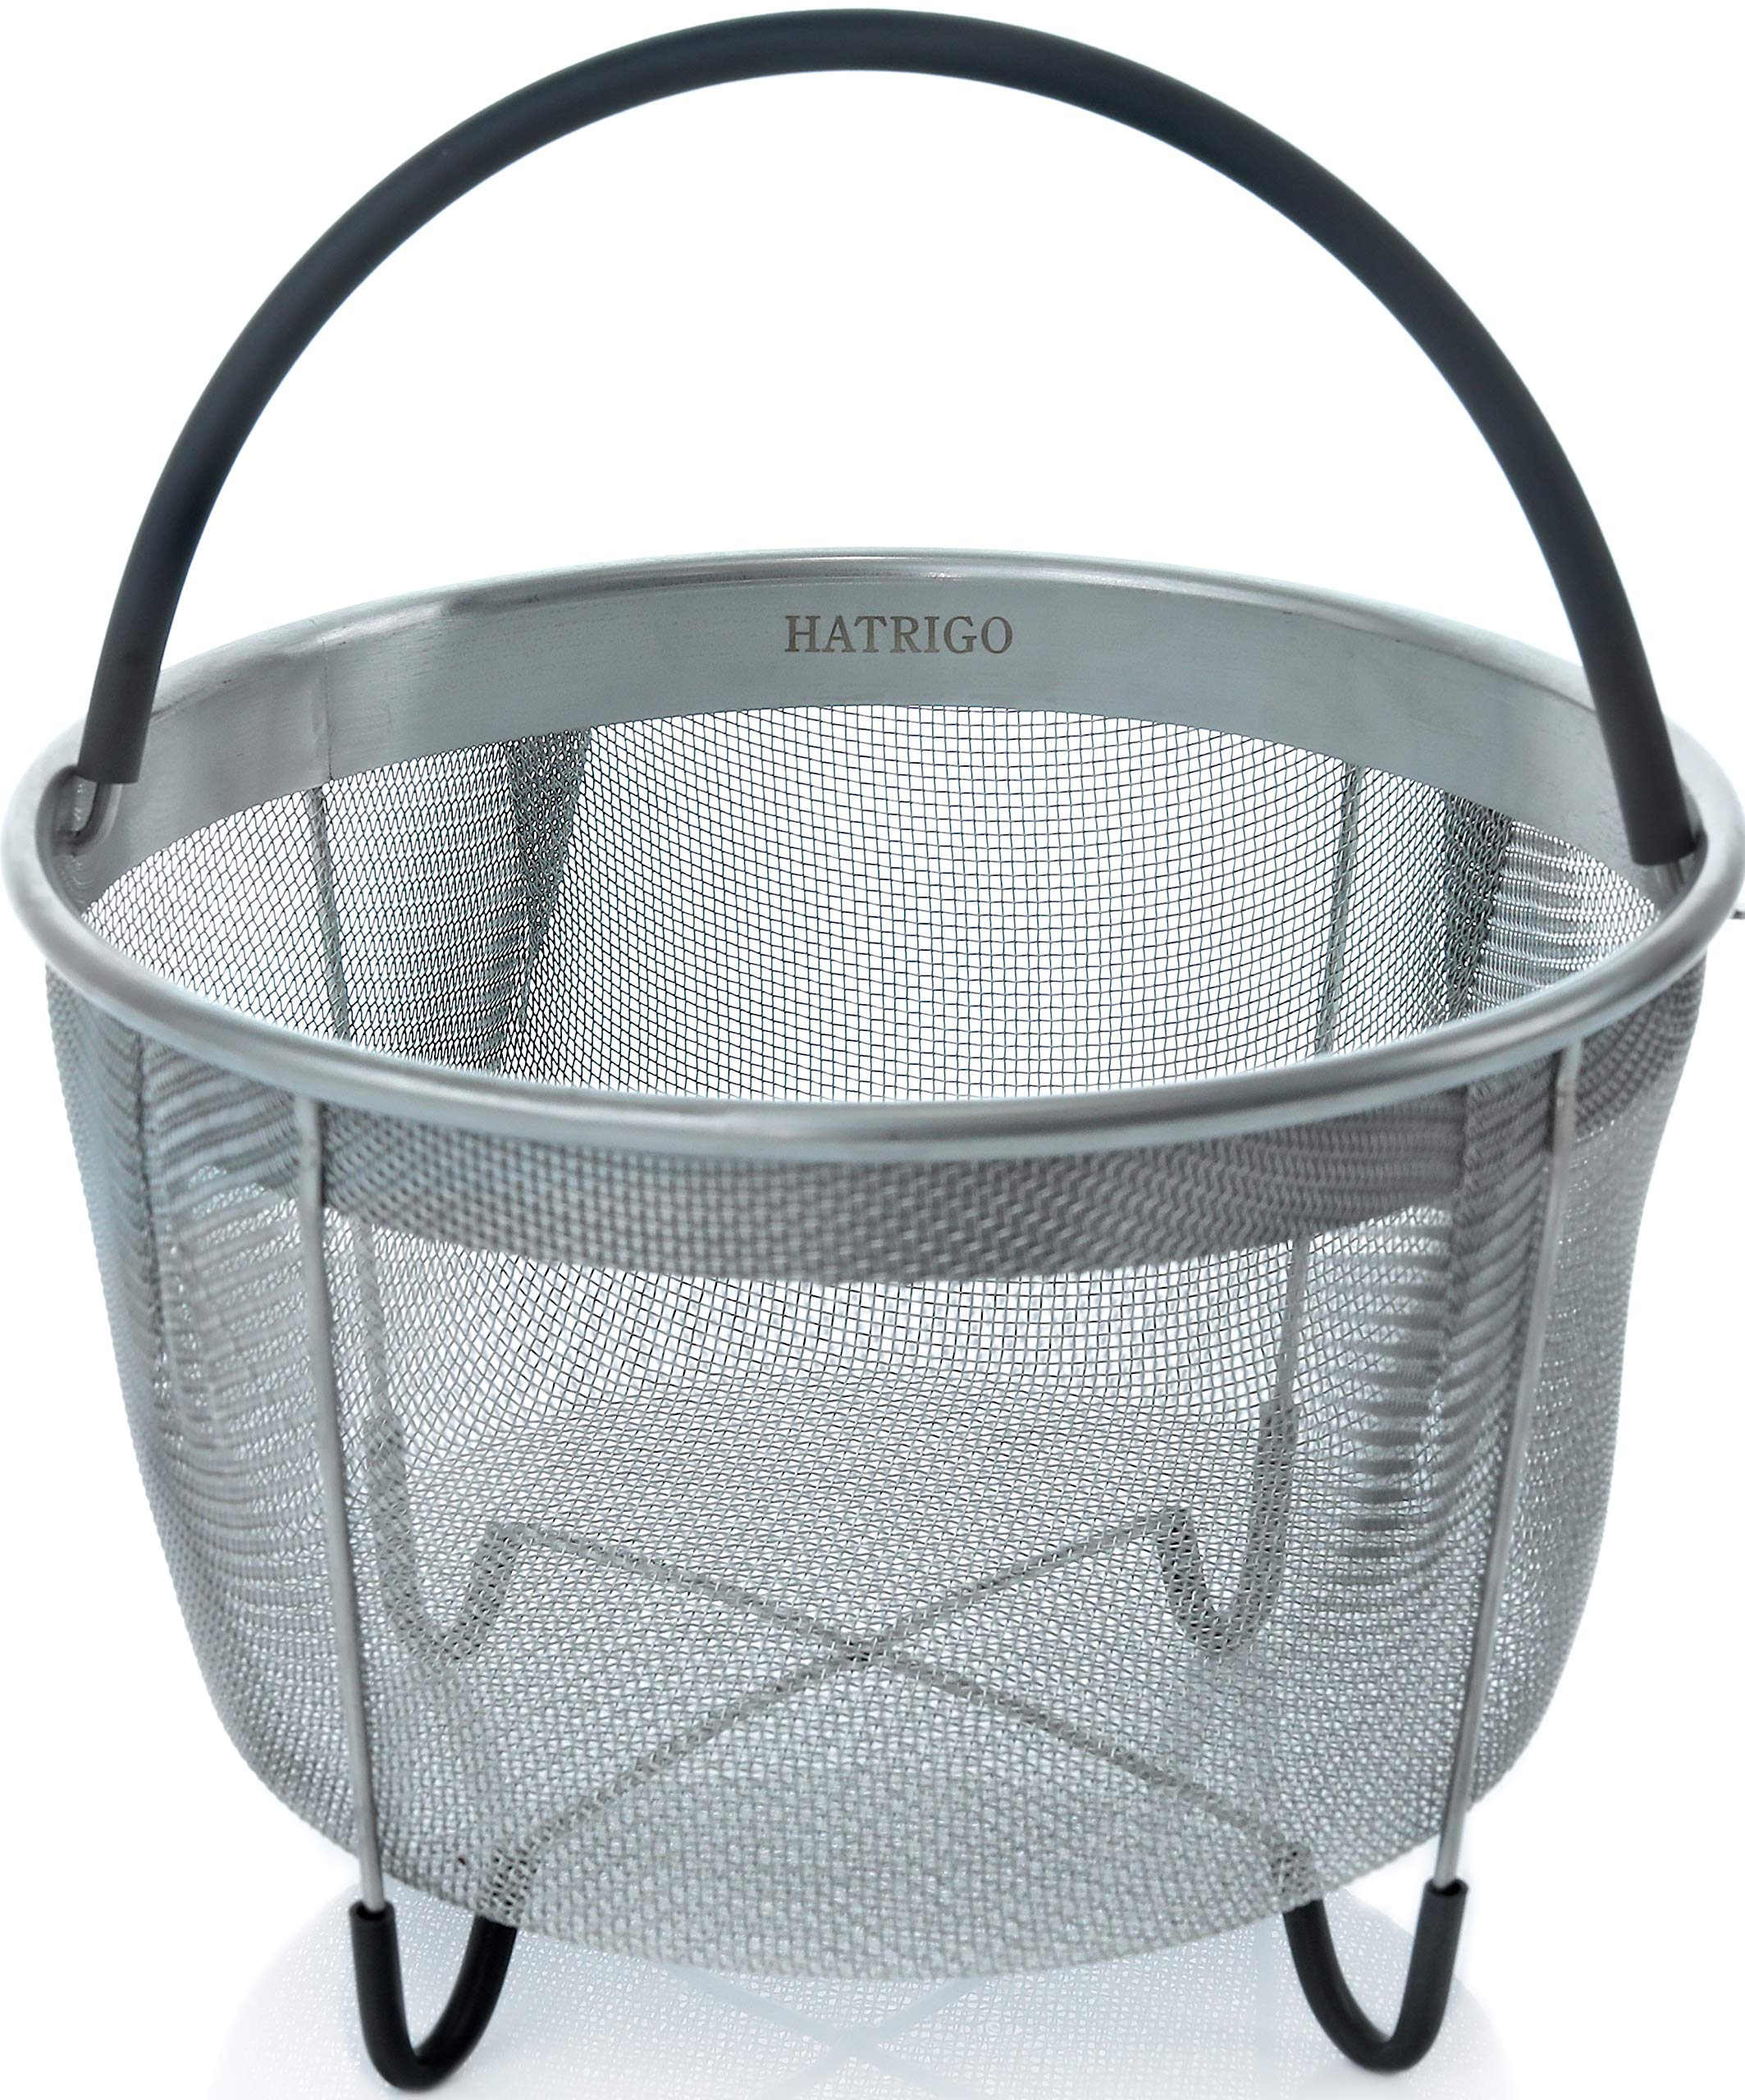 Hatrigo Steamer Basket for Pressure Cooker Accessories 6qt [3qt 8qt Avail] Compatible with Instant Pot Accessories Ninja Foodi Other Multi Cookers, Strainer Insert with Silicone Handle, IP 6 Quart